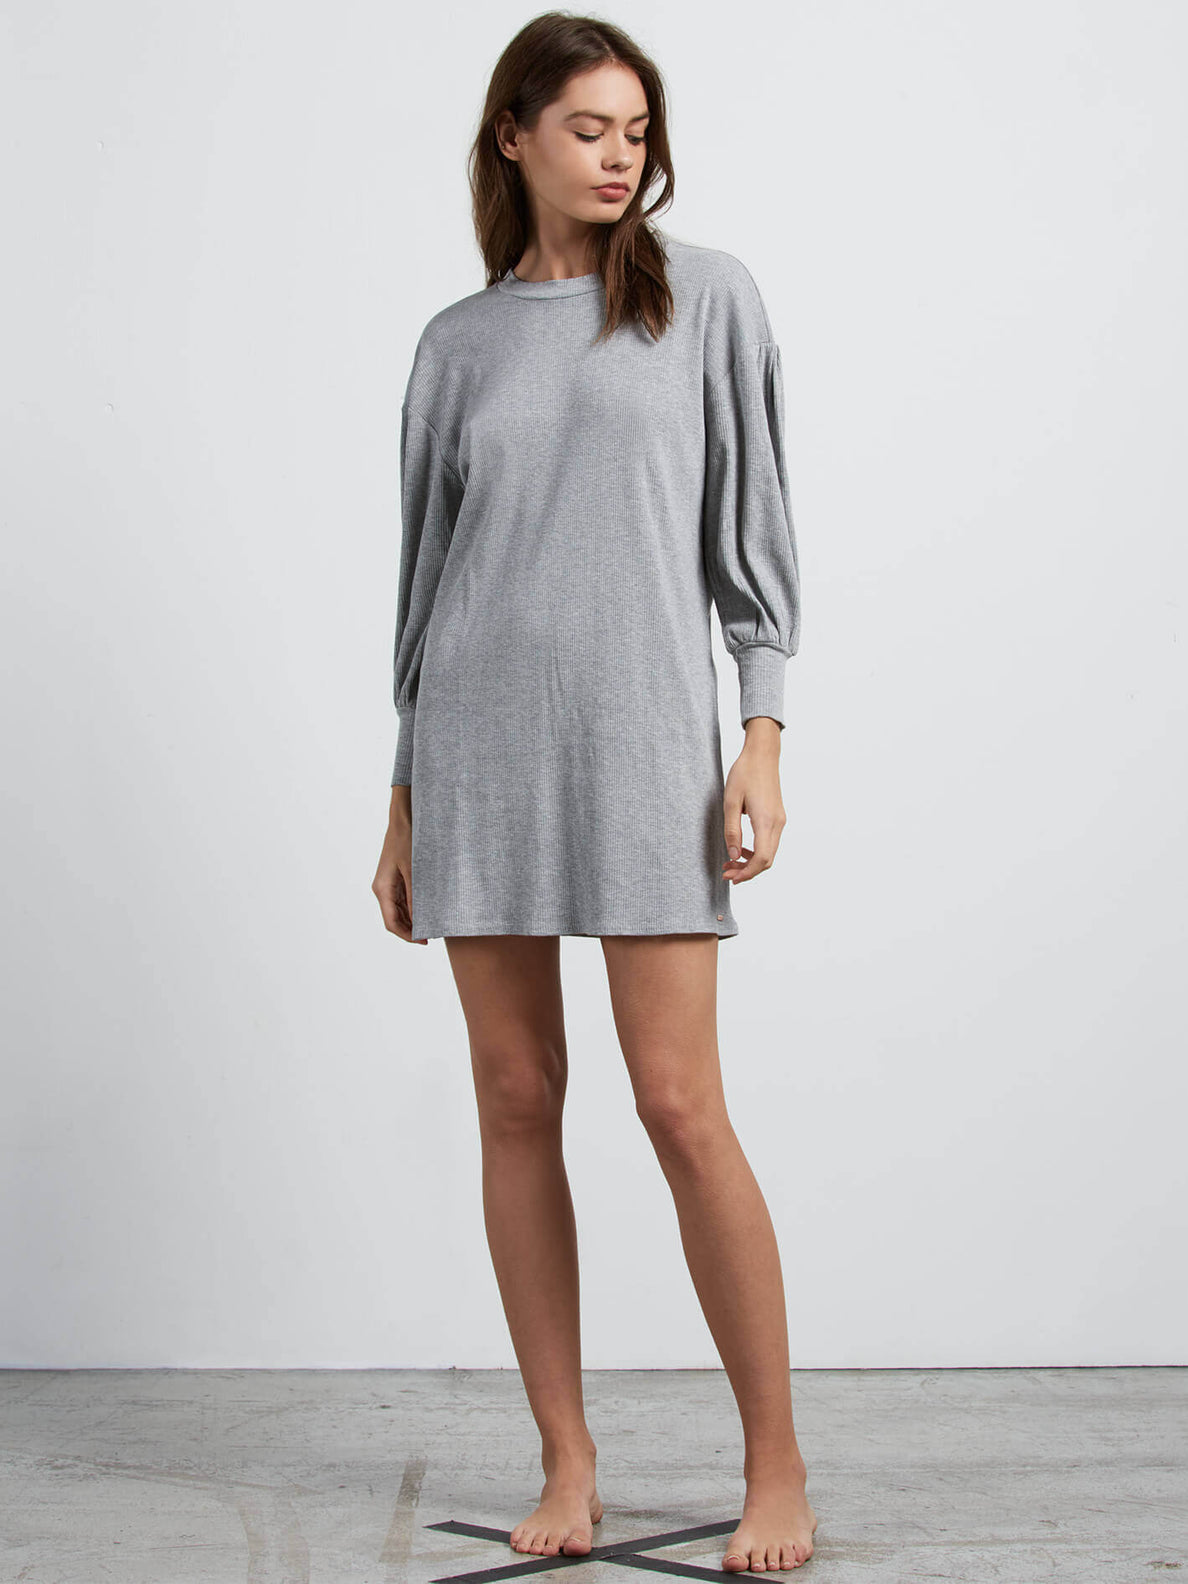 Lived In Lounge Long Sleeve Dress In Heather Grey, Front View